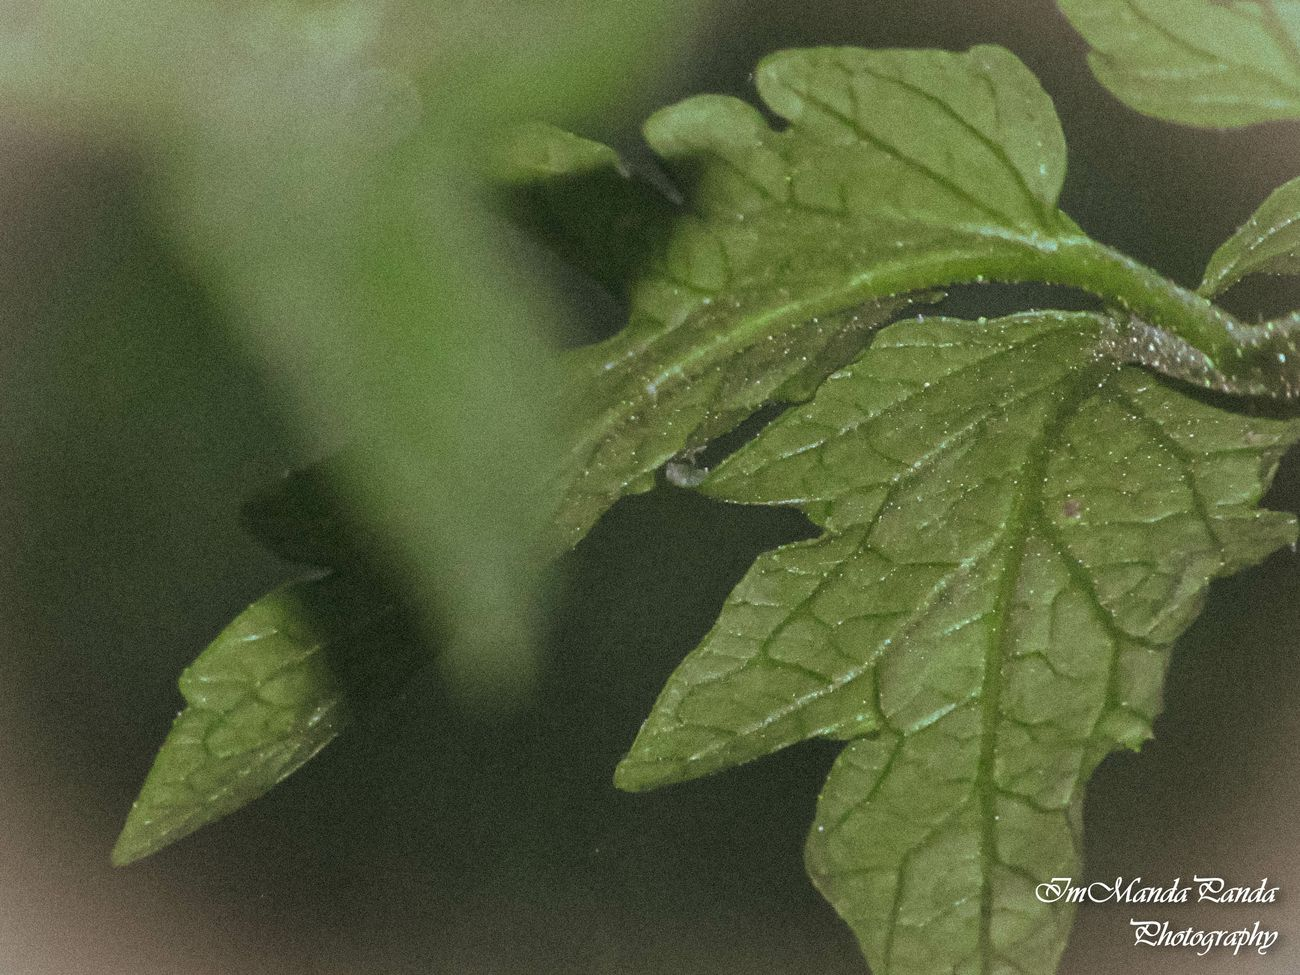 The beauty of nature in a leaf <3